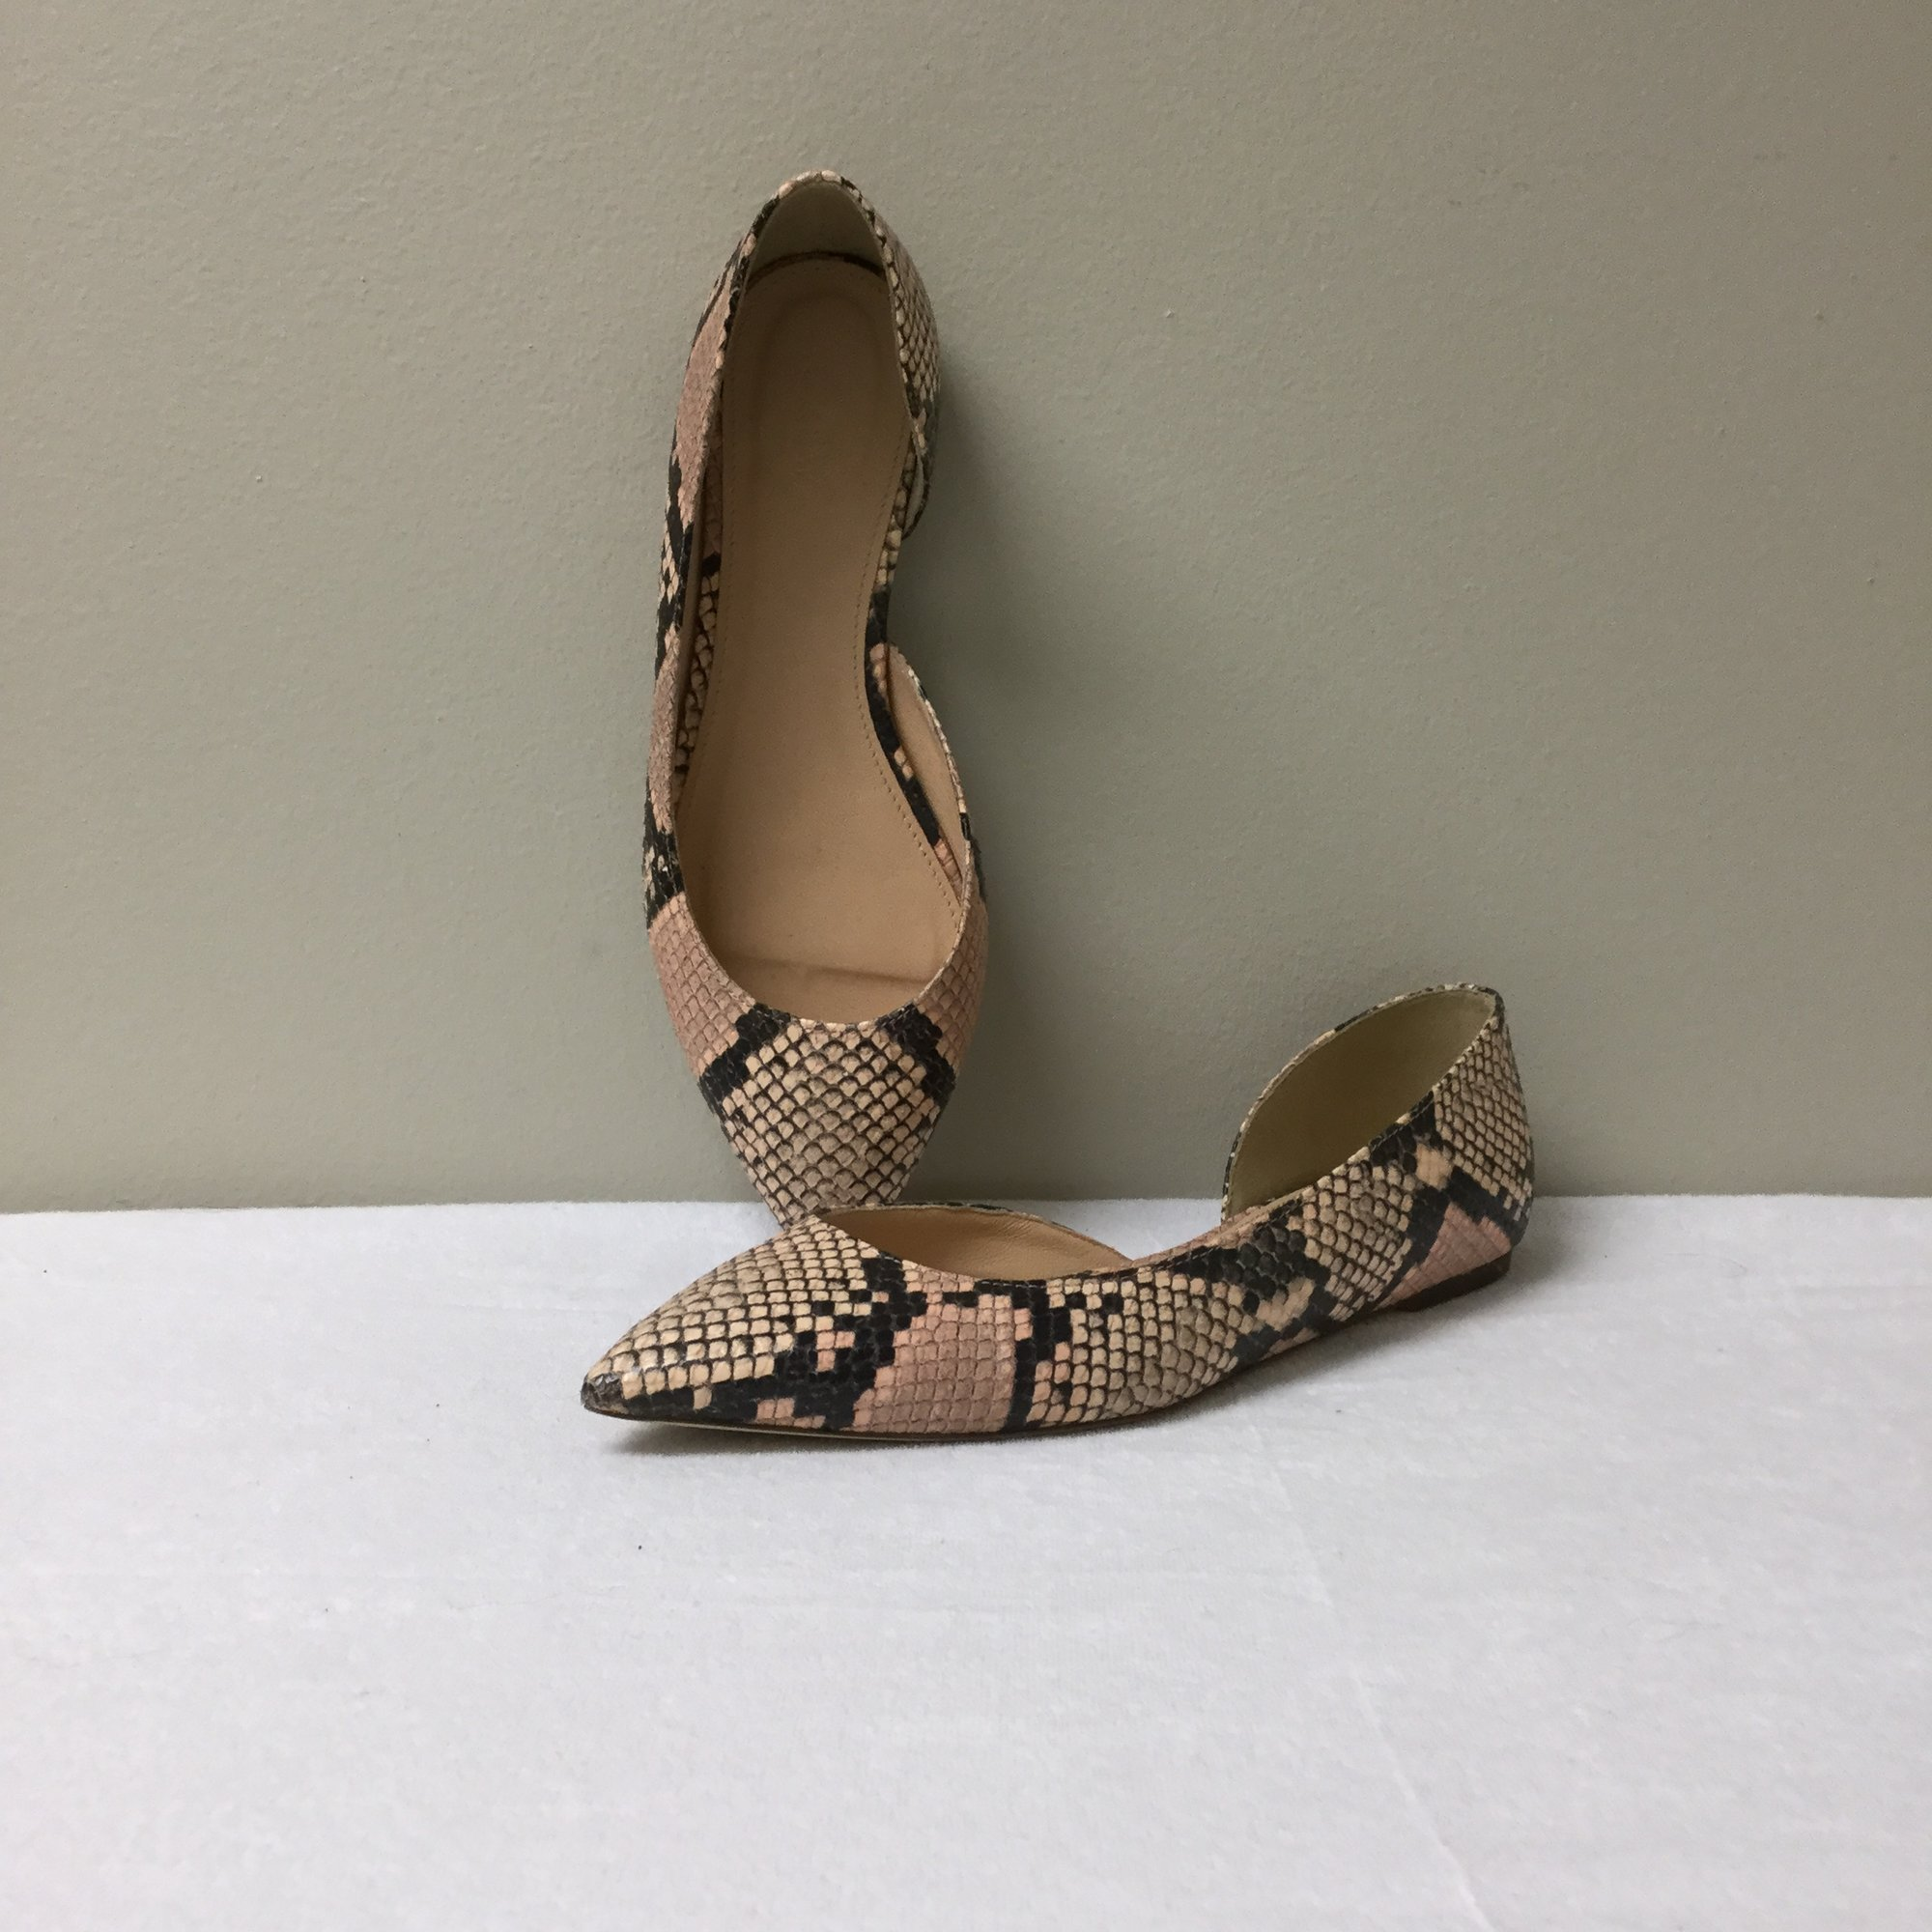 JCrew Snake Pointed Flat<br /> Size 8.5<br /> Nude/Black<br /> $63.00